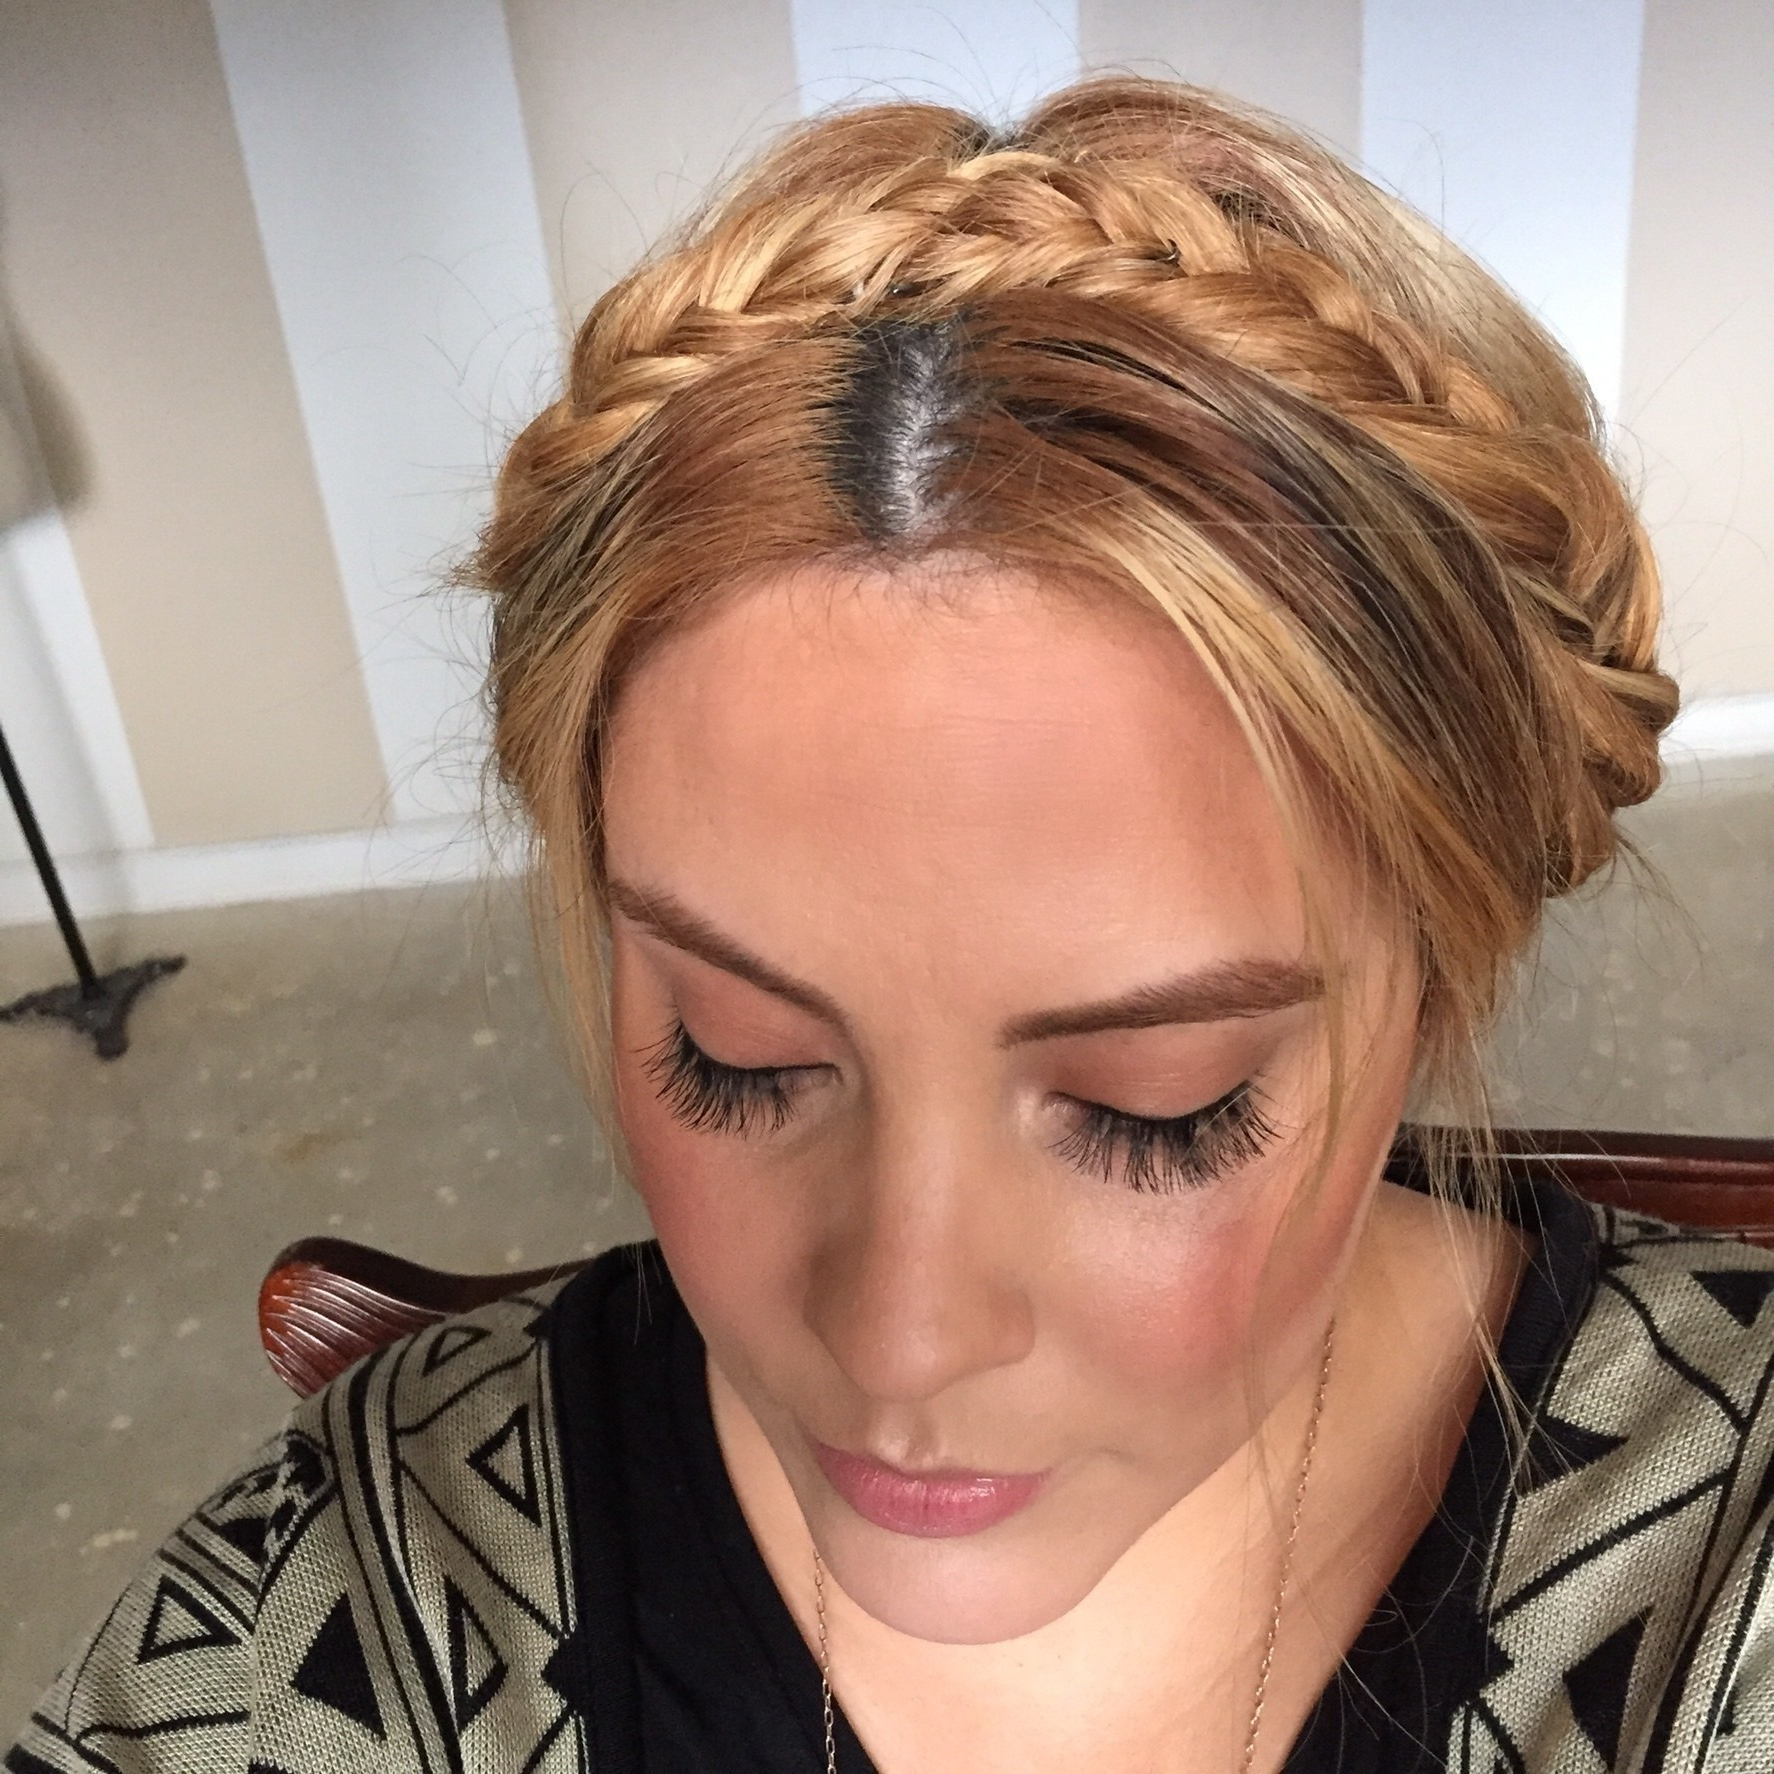 Newest Full Headband Braid Hairstyles For Braided Headband Updo · How To Style A Crown Braid · Beauty (View 17 of 20)